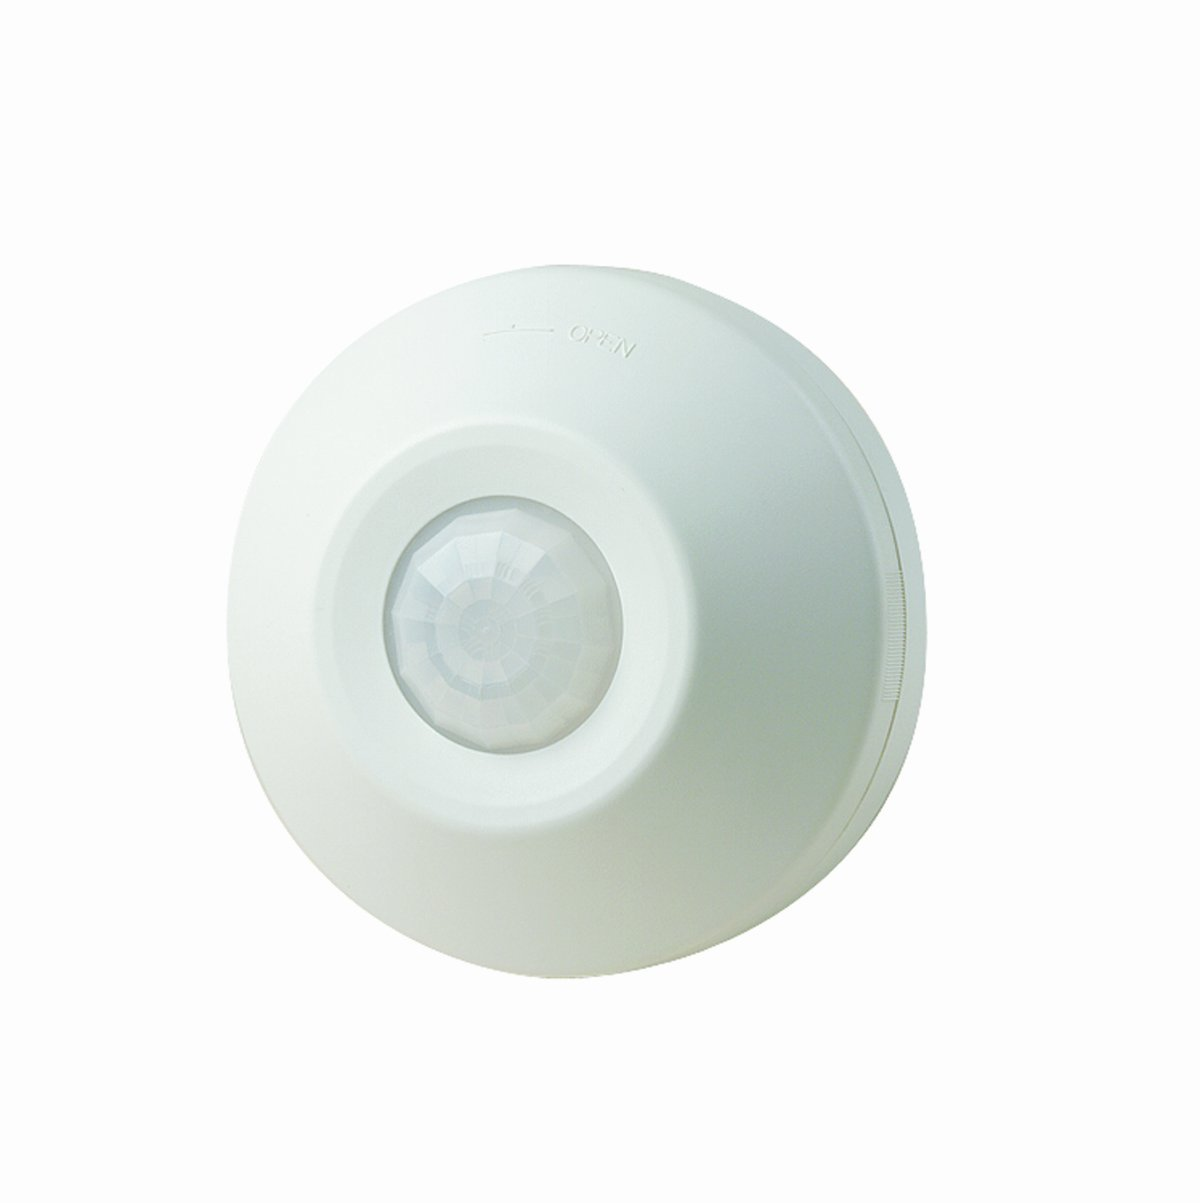 Exceptional Leviton ODC0S I1W Self Contained Ceiling Mount Occupancy Sensor And  Switching Relay, 1000 Watt, 120 Volt   Motion Detectors   Amazon.com